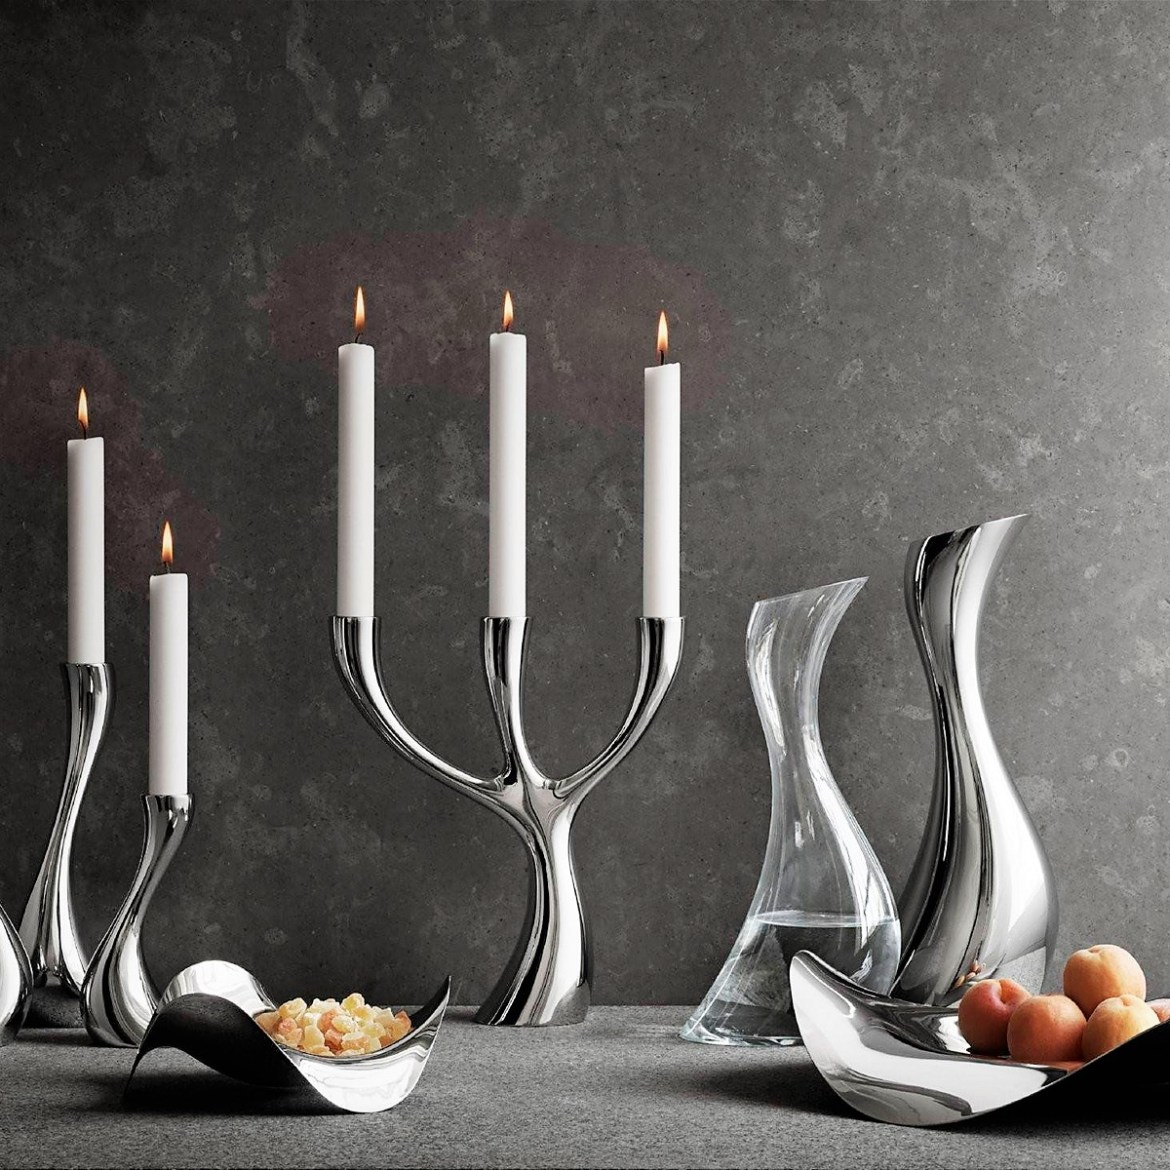 Georg Jensen Cobra Collection Candle holder, Candelabra, Bowl and Carafe in stainless steel and glass